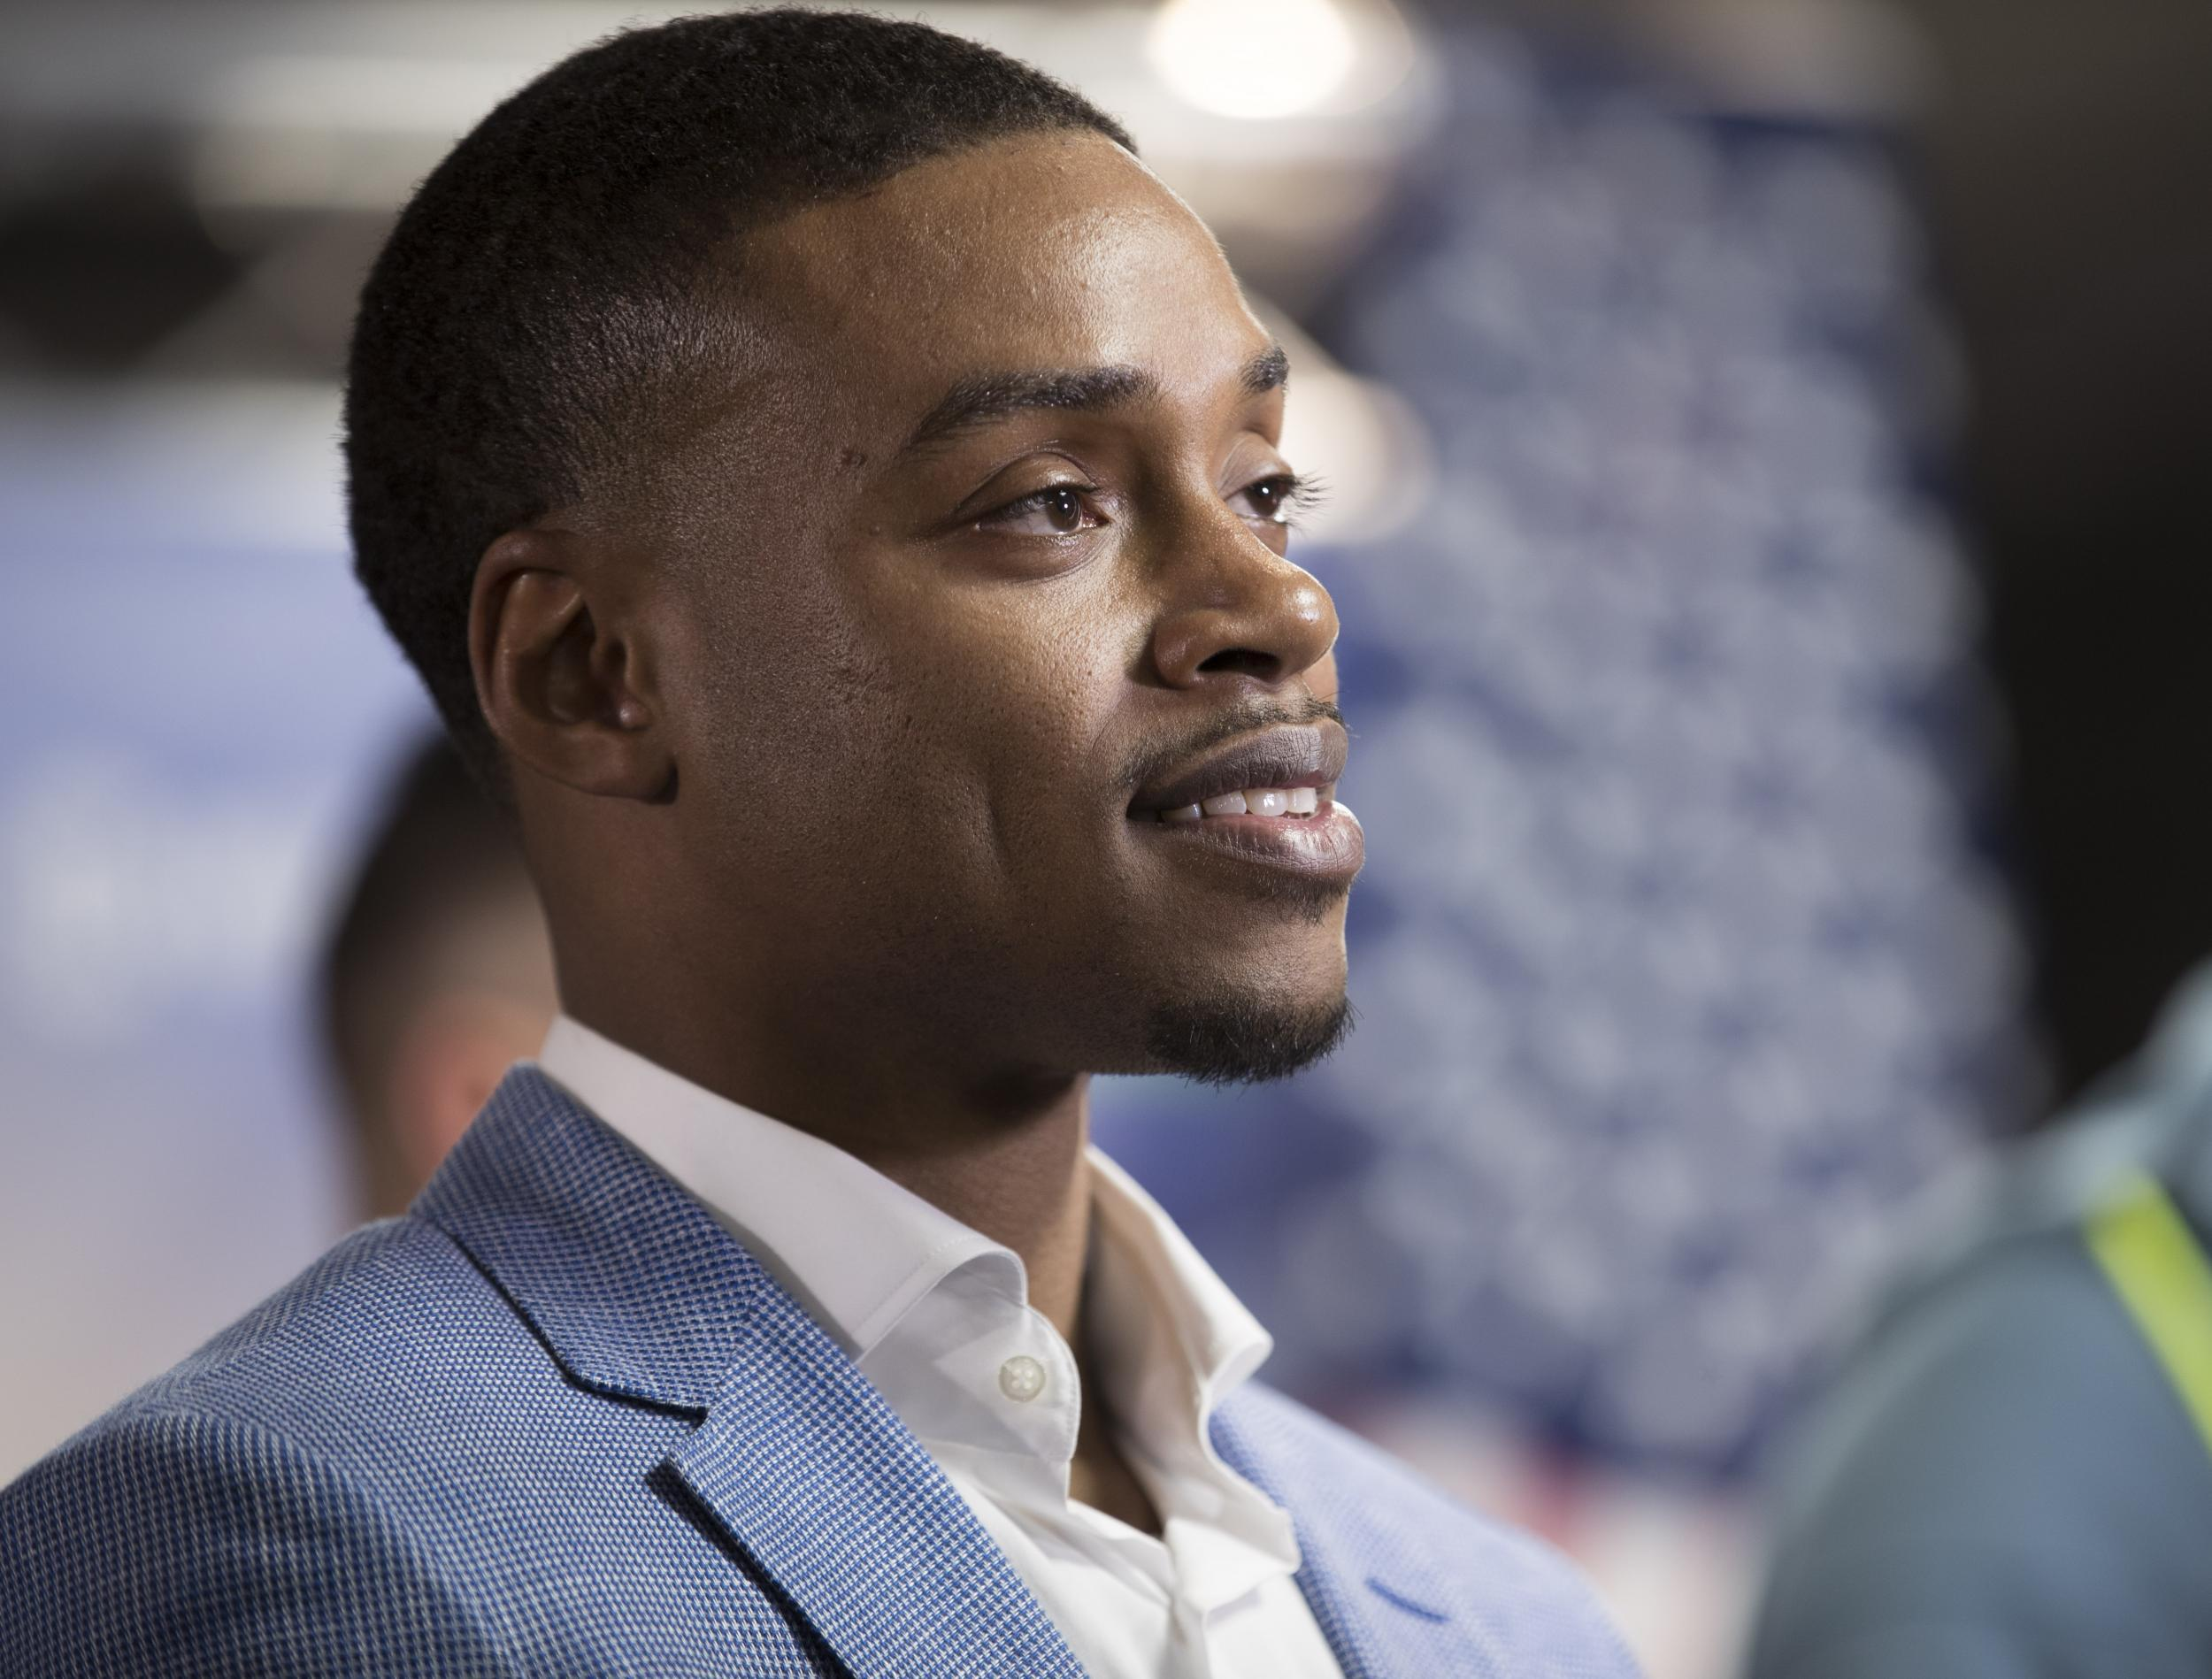 Errol Spence Jr: Boxer charged with drink driving after being released from hospital